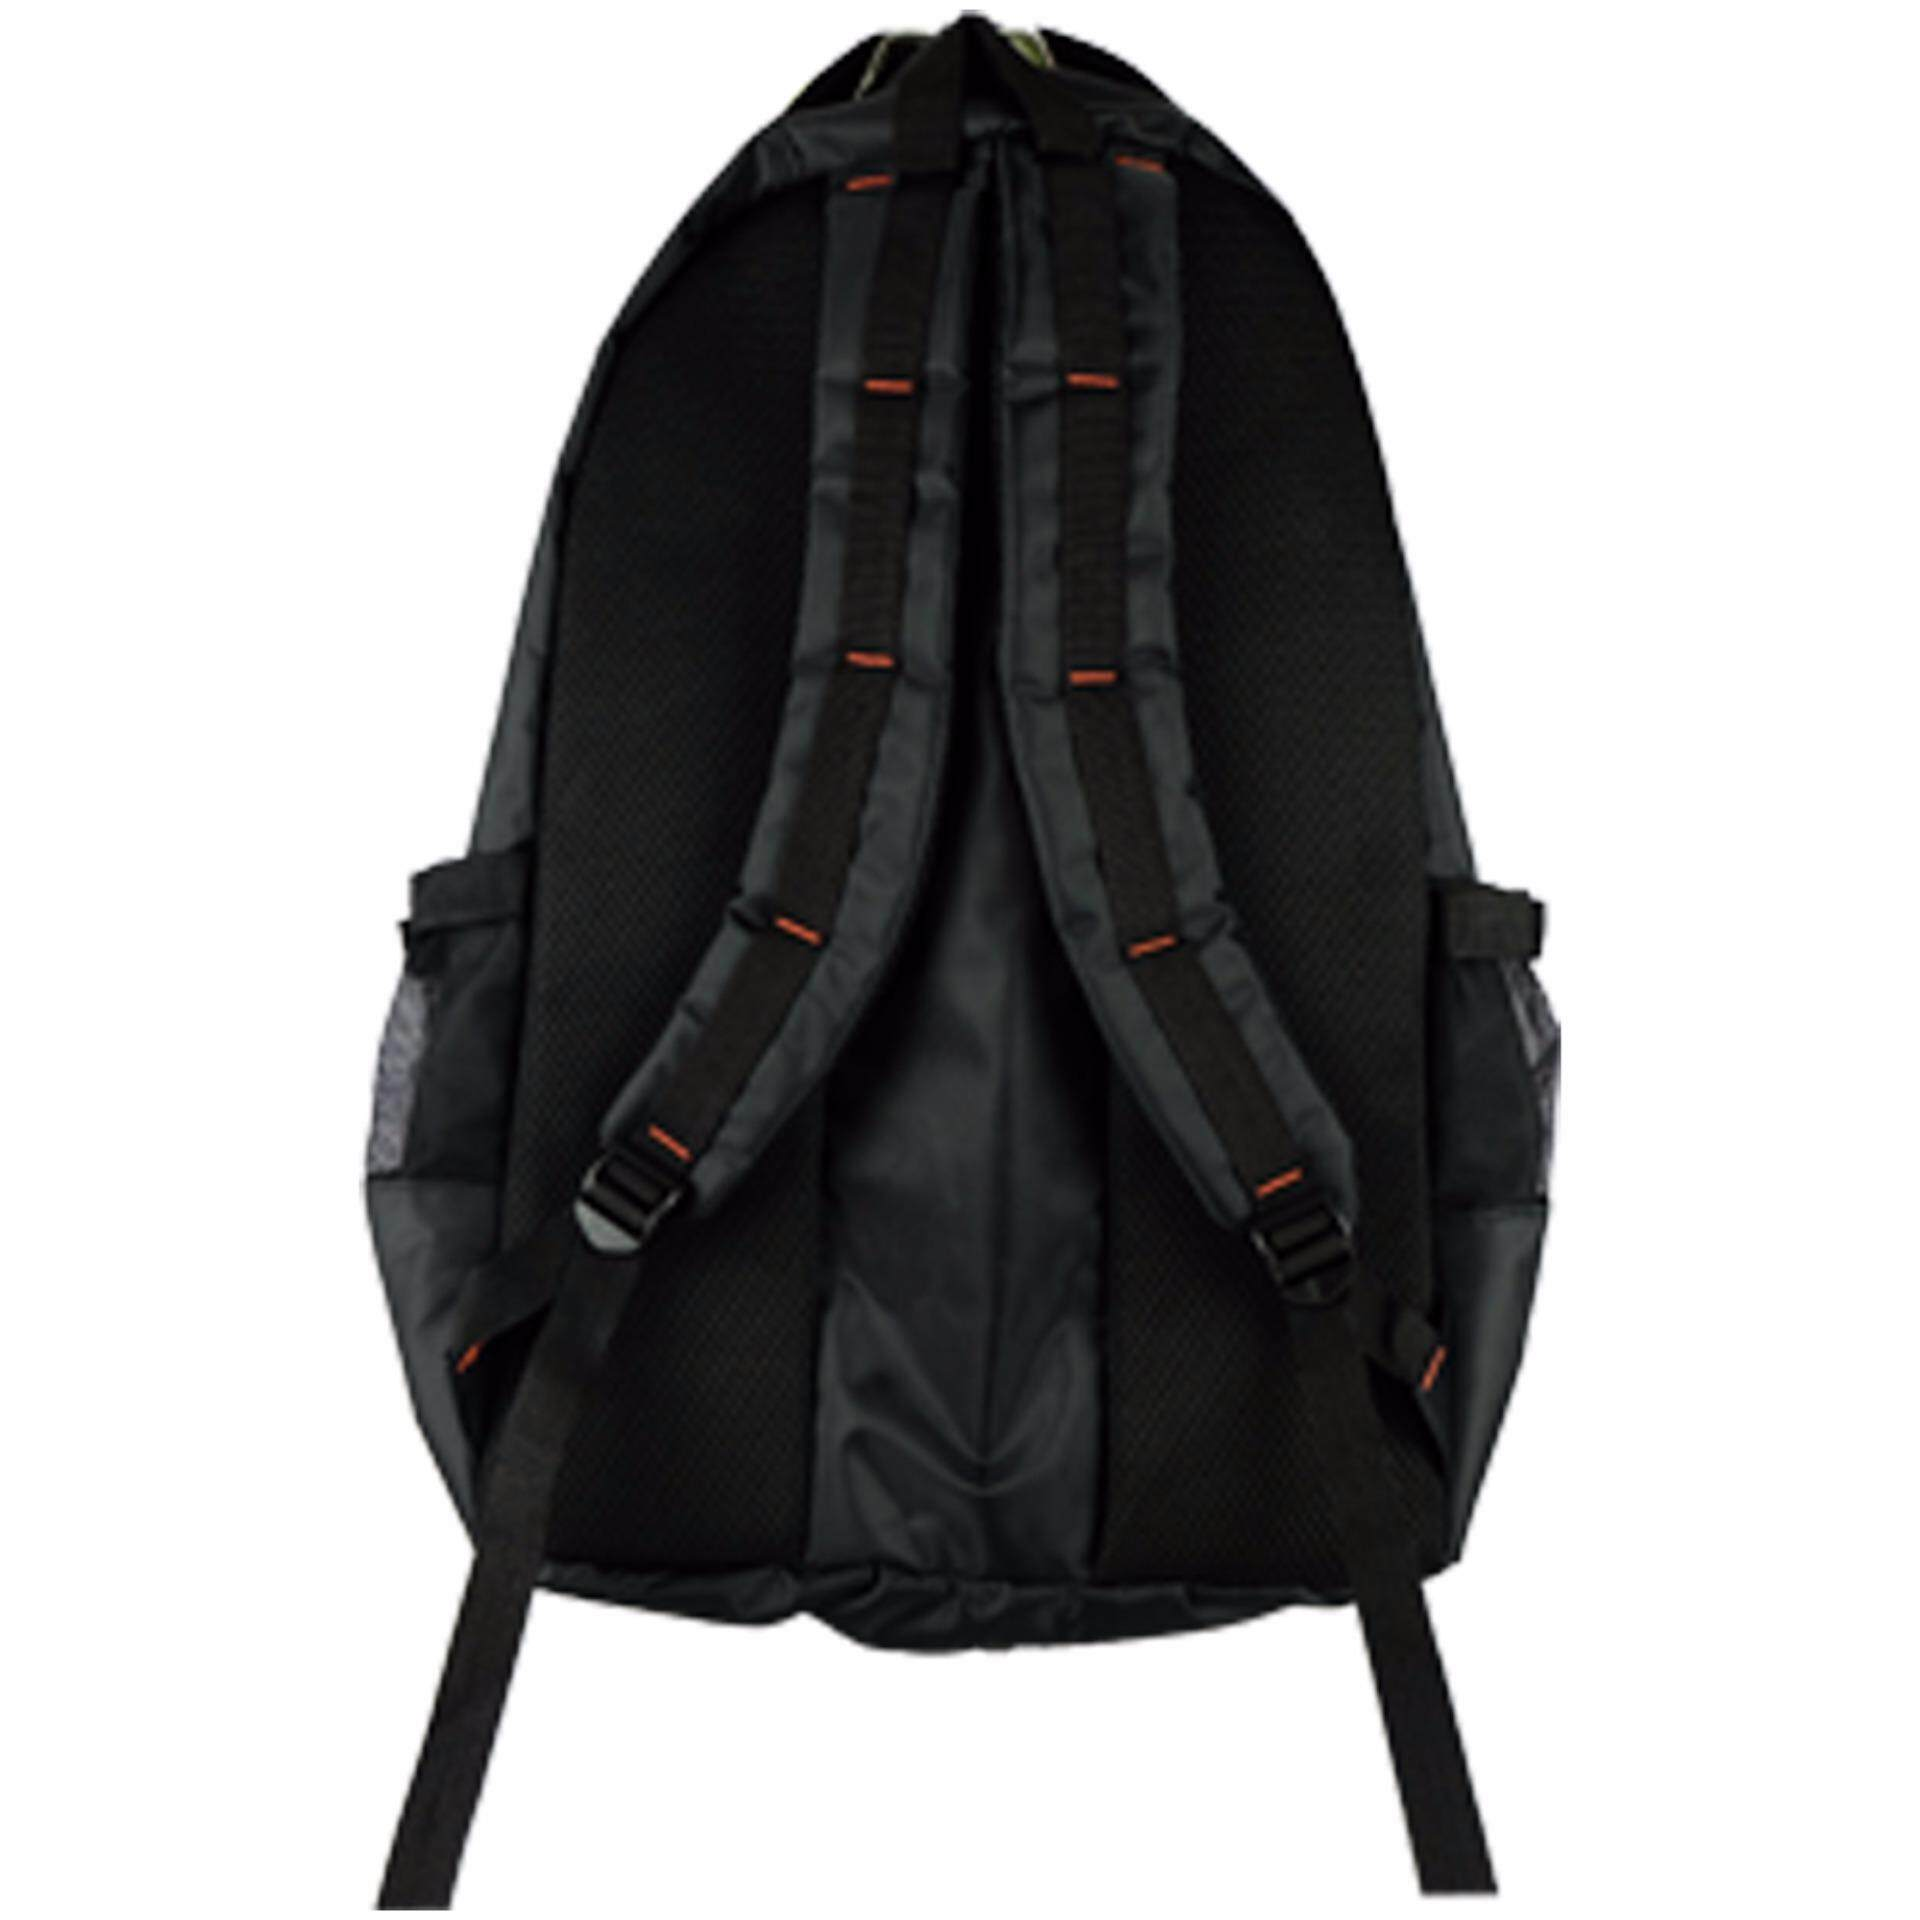 W.POLO 21 Inch WH9636 Hiking Backpack- Black/Navy